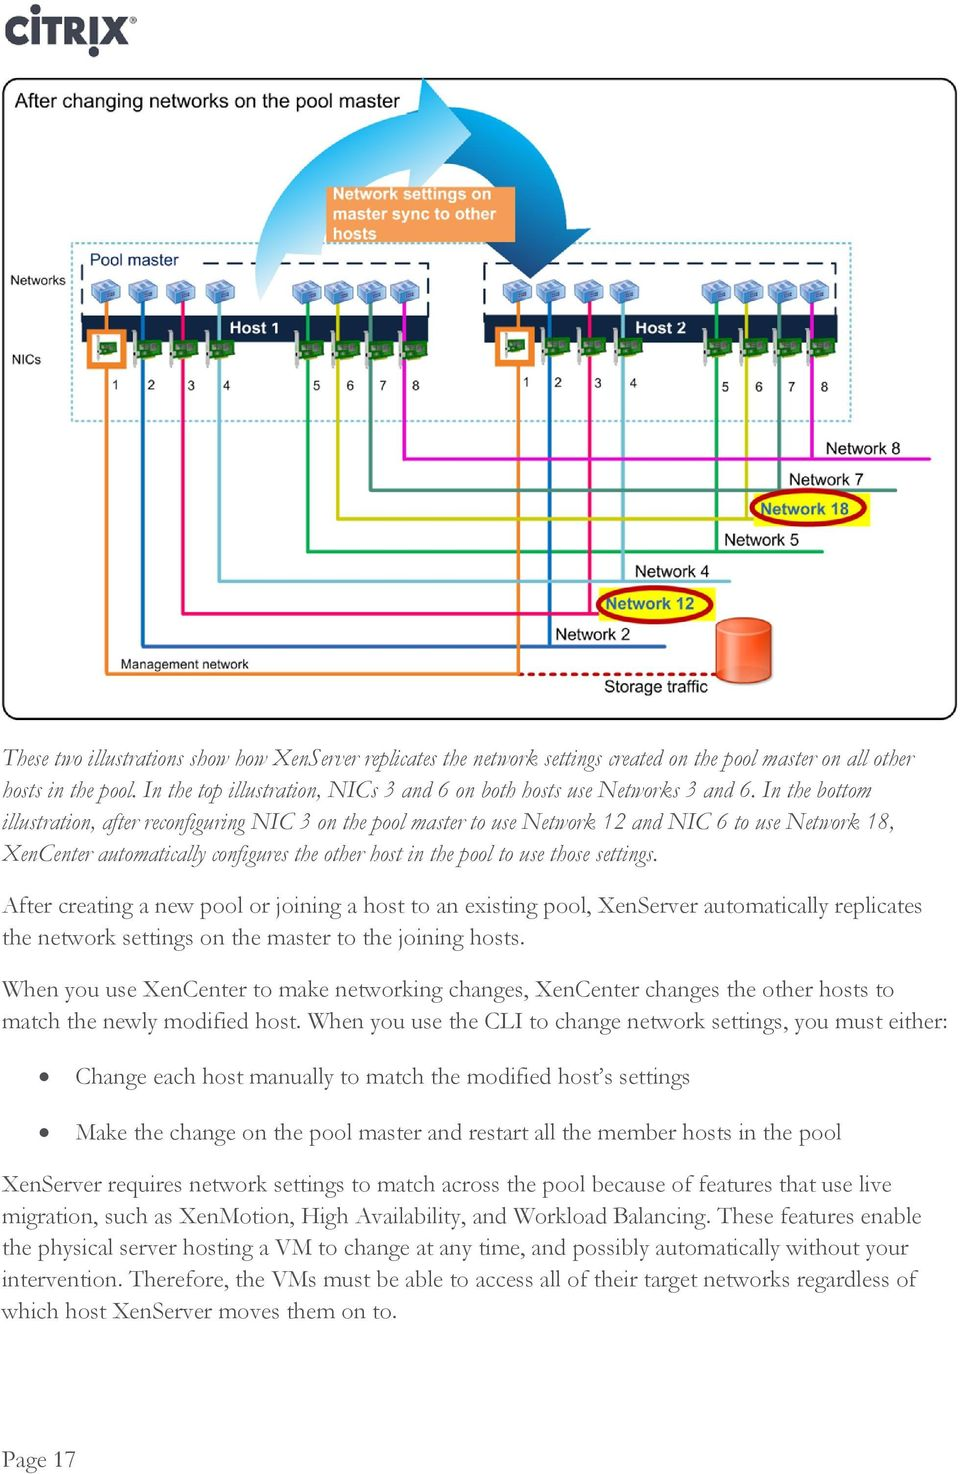 In the bottom illustration, after reconfiguring NIC 3 on the pool master to use Network 12 and NIC 6 to use Network 18, XenCenter automatically configures the other host in the pool to use those